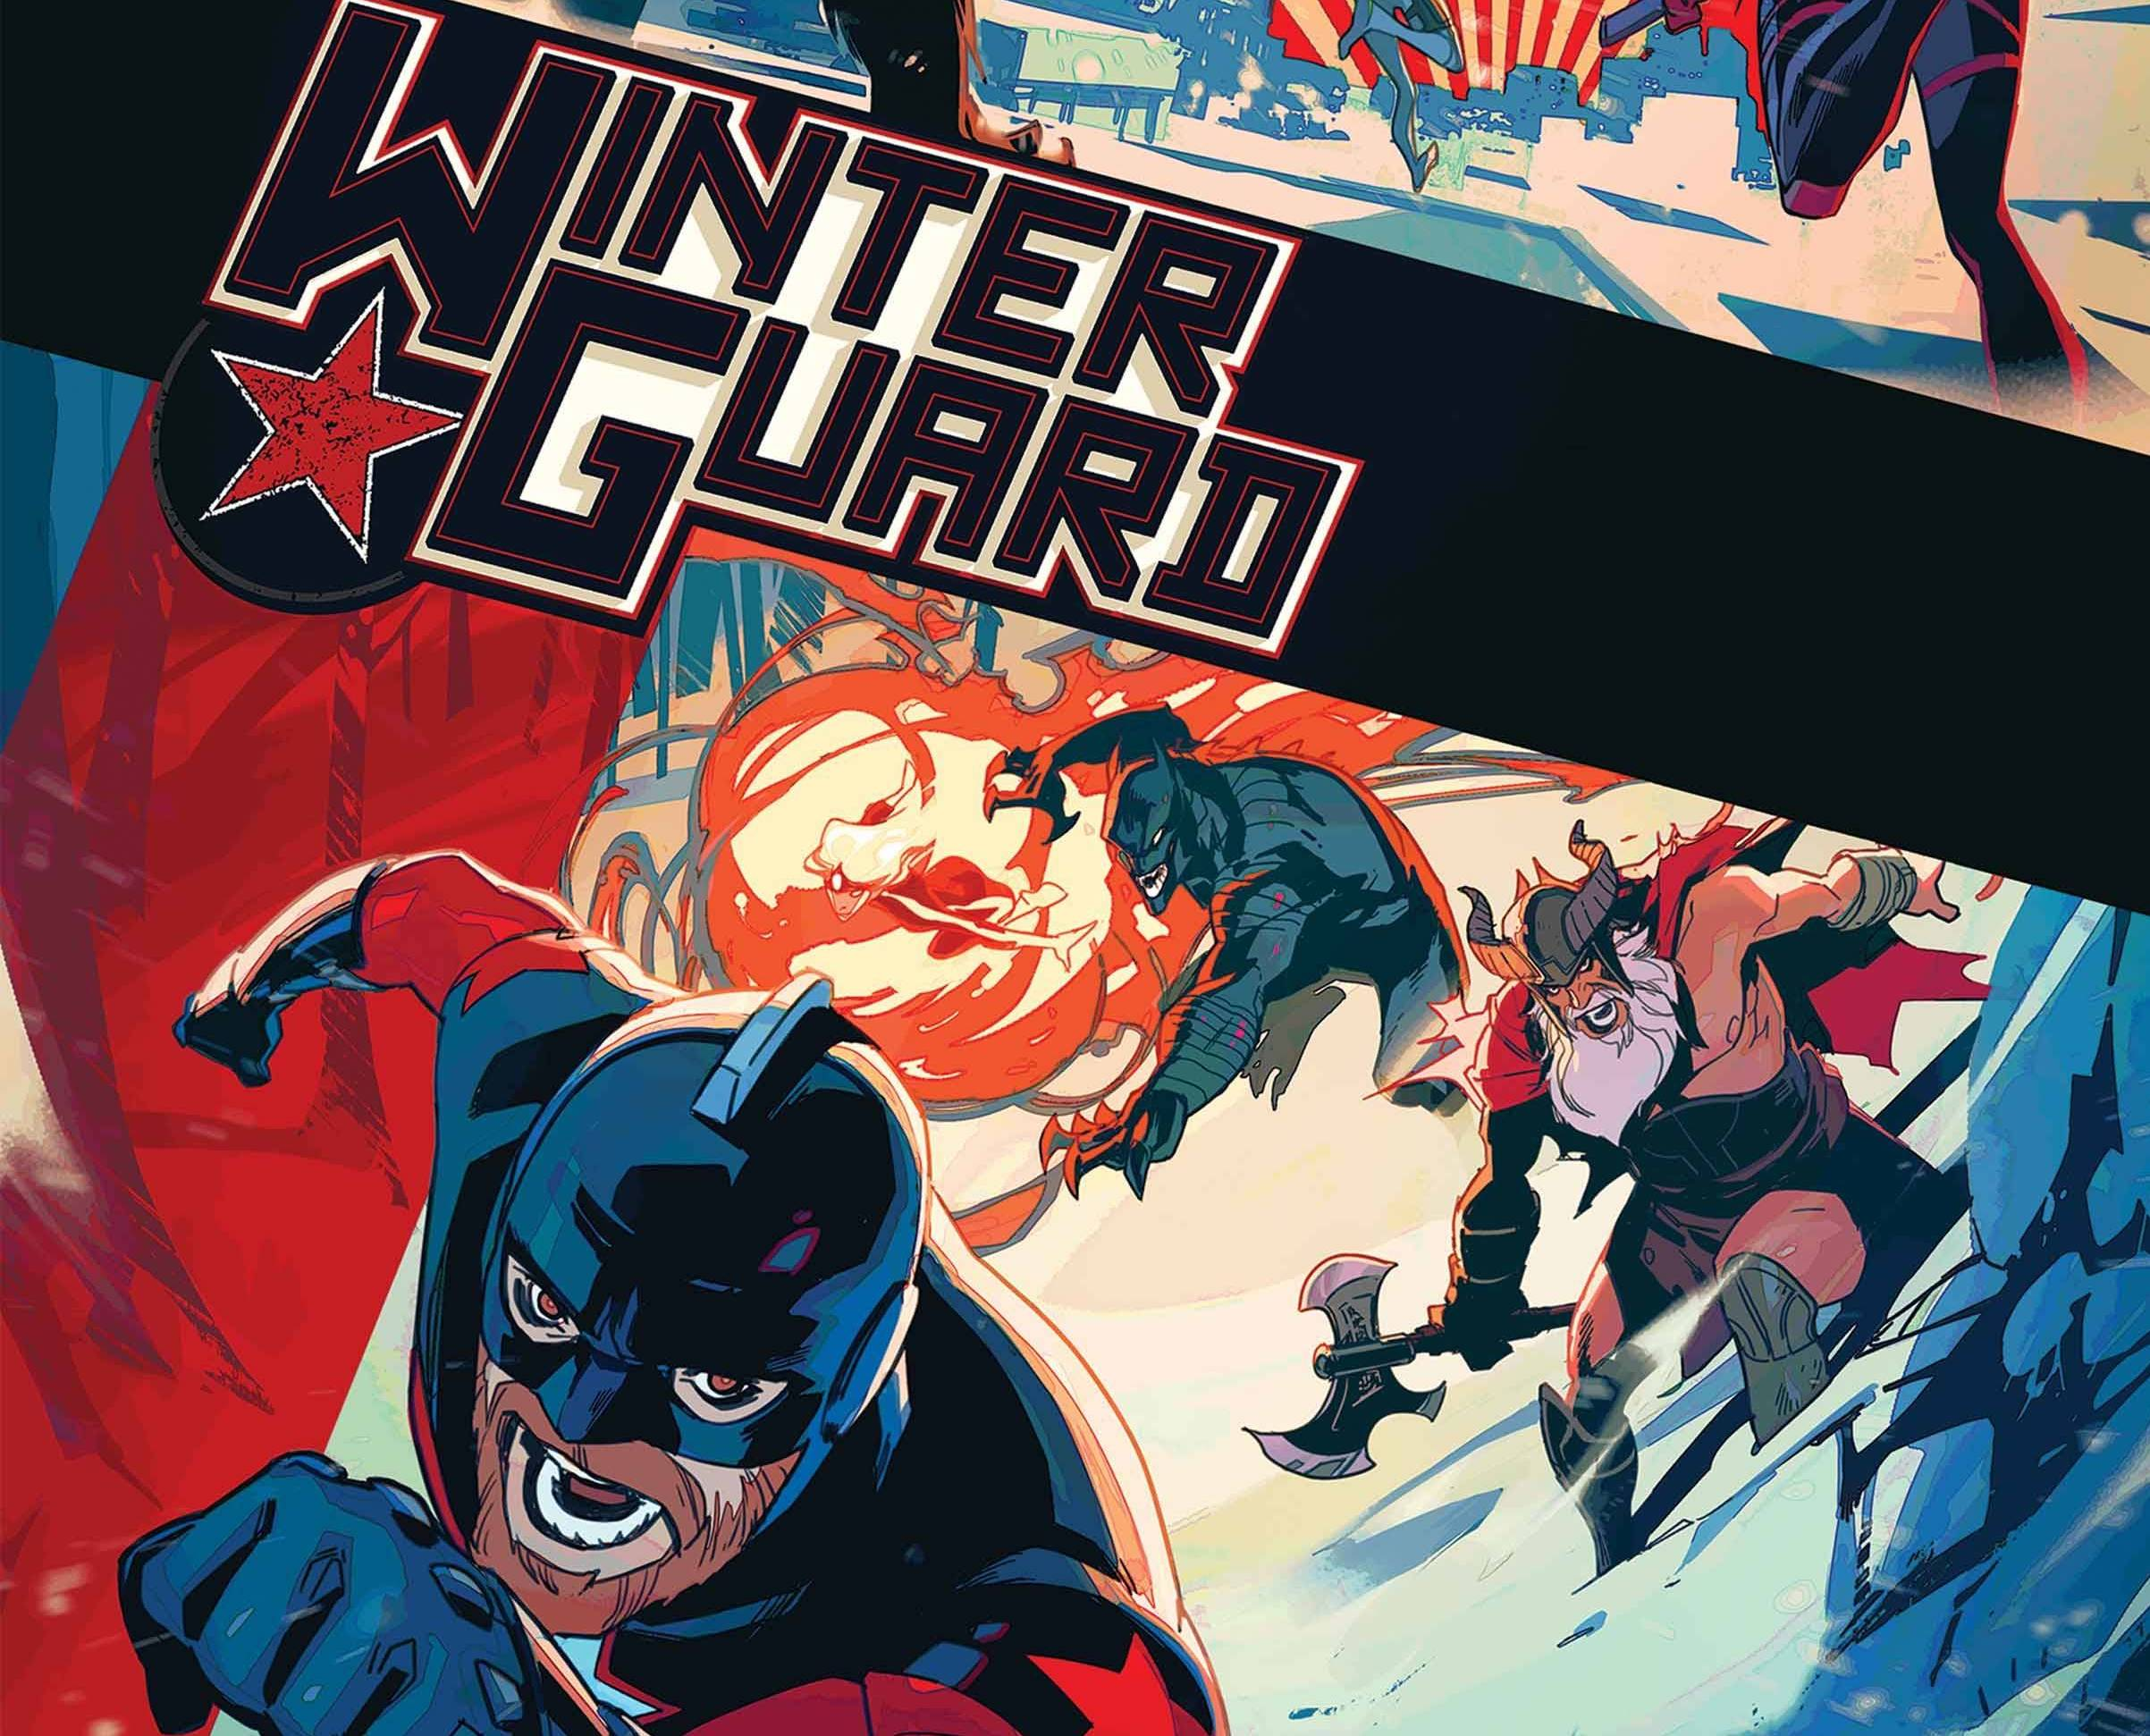 'Winter Guard' #2 will make you want more comics about this Russian team